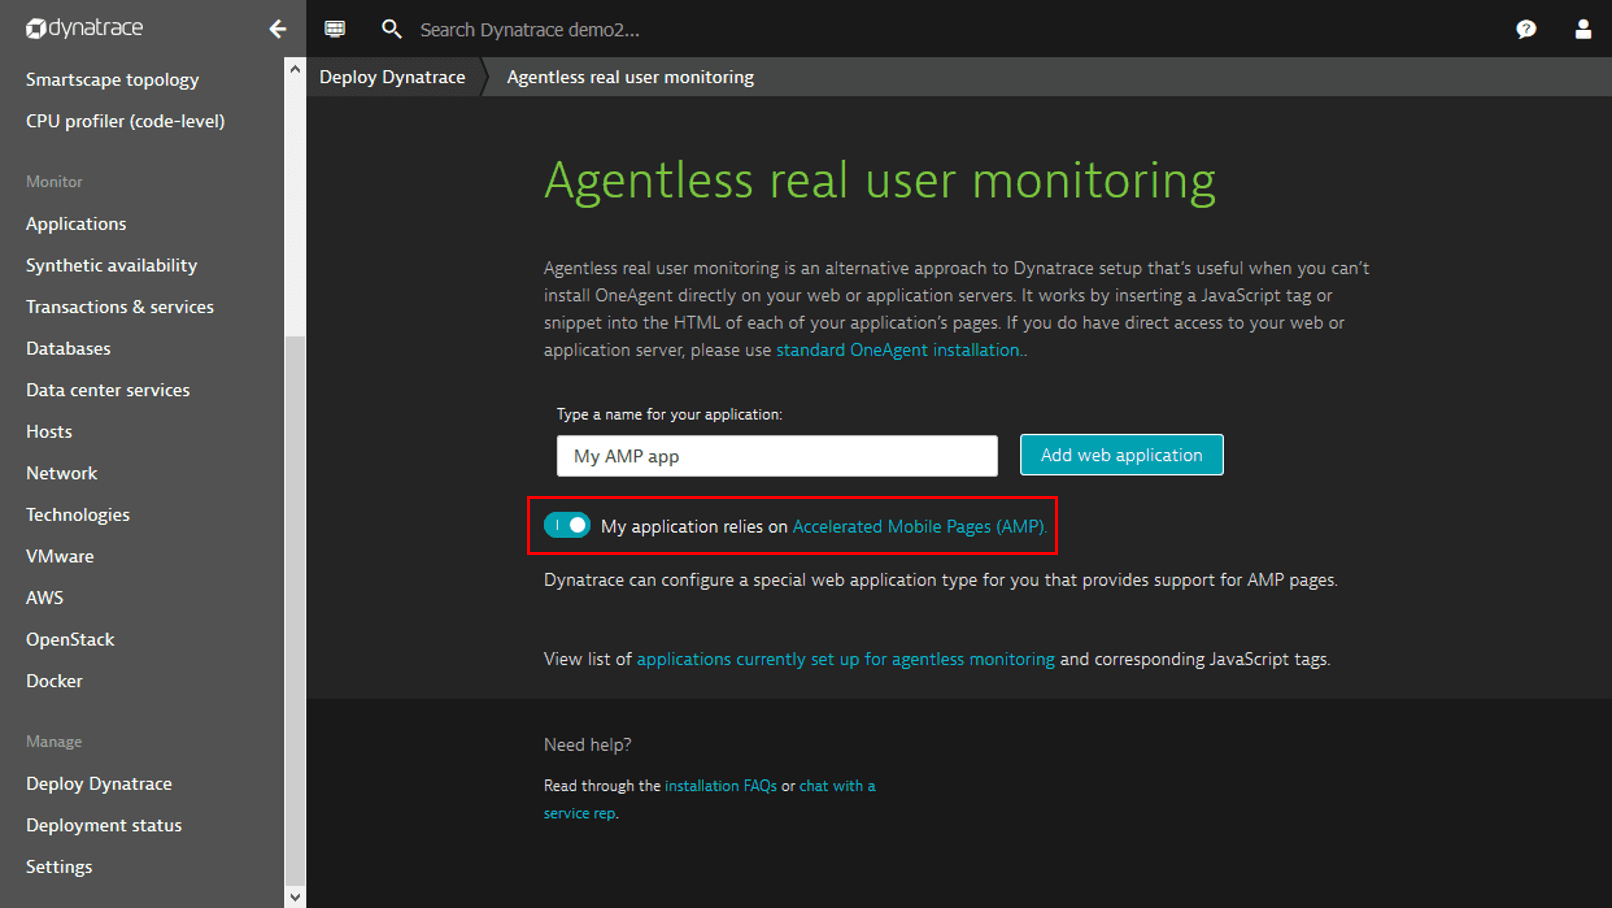 AMP application monitoring